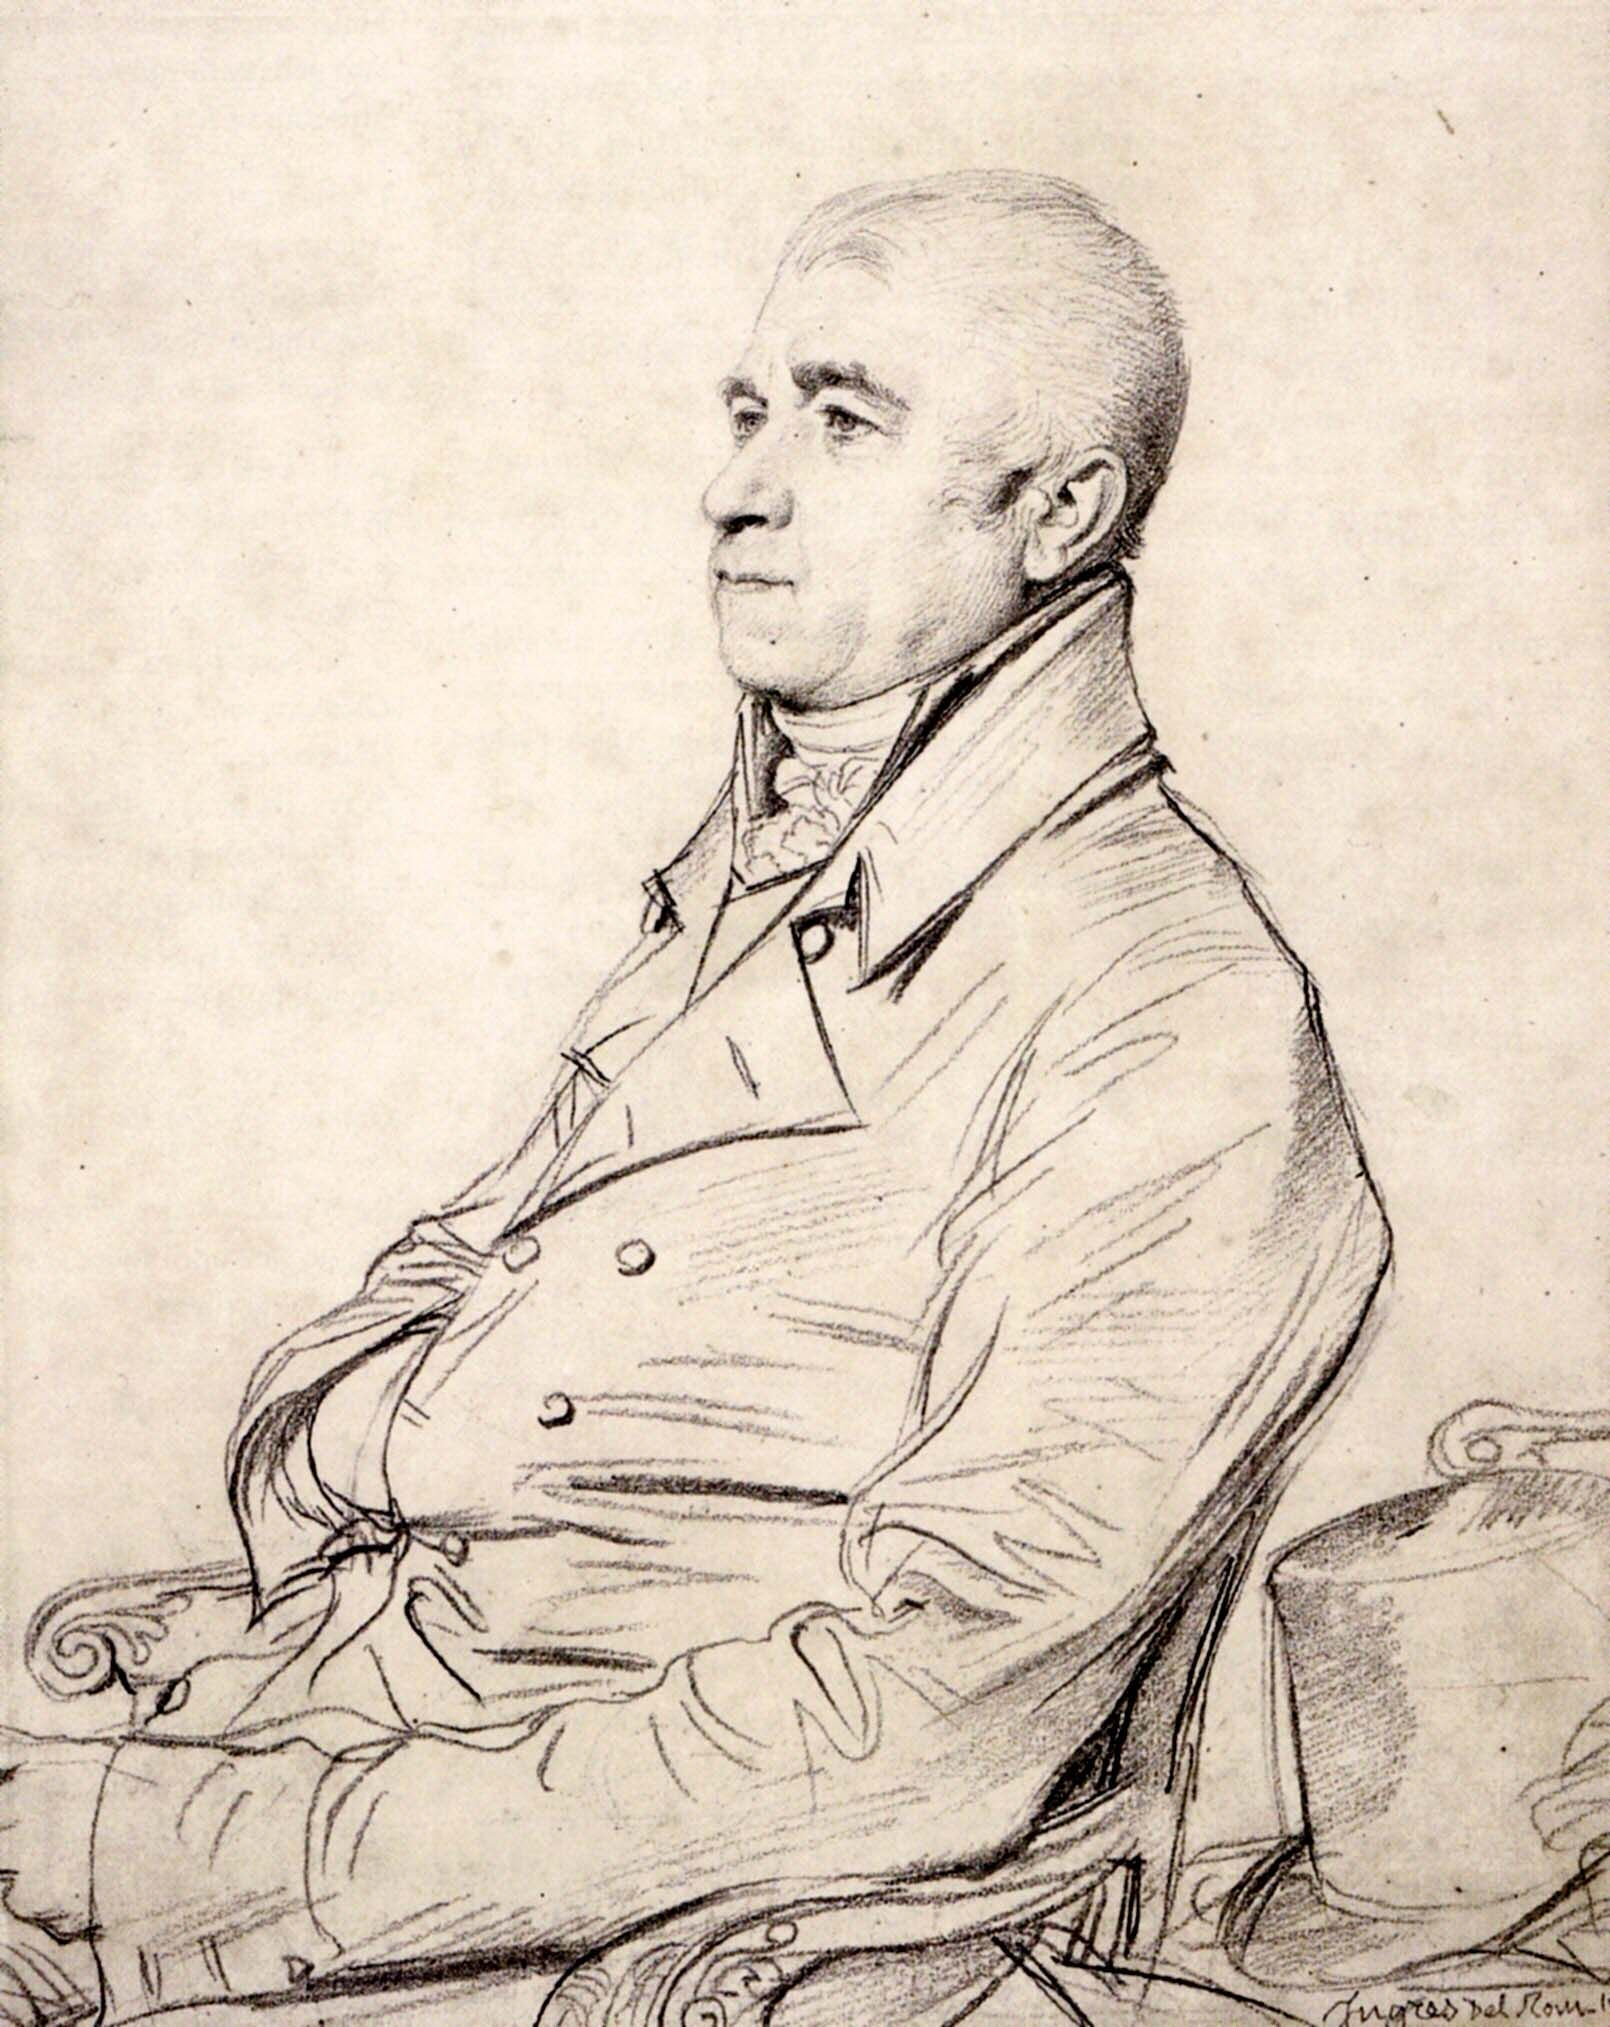 WikiArt.org - the encyclopedia of painting | Ingres, Dessin homme, Portrait  dessin